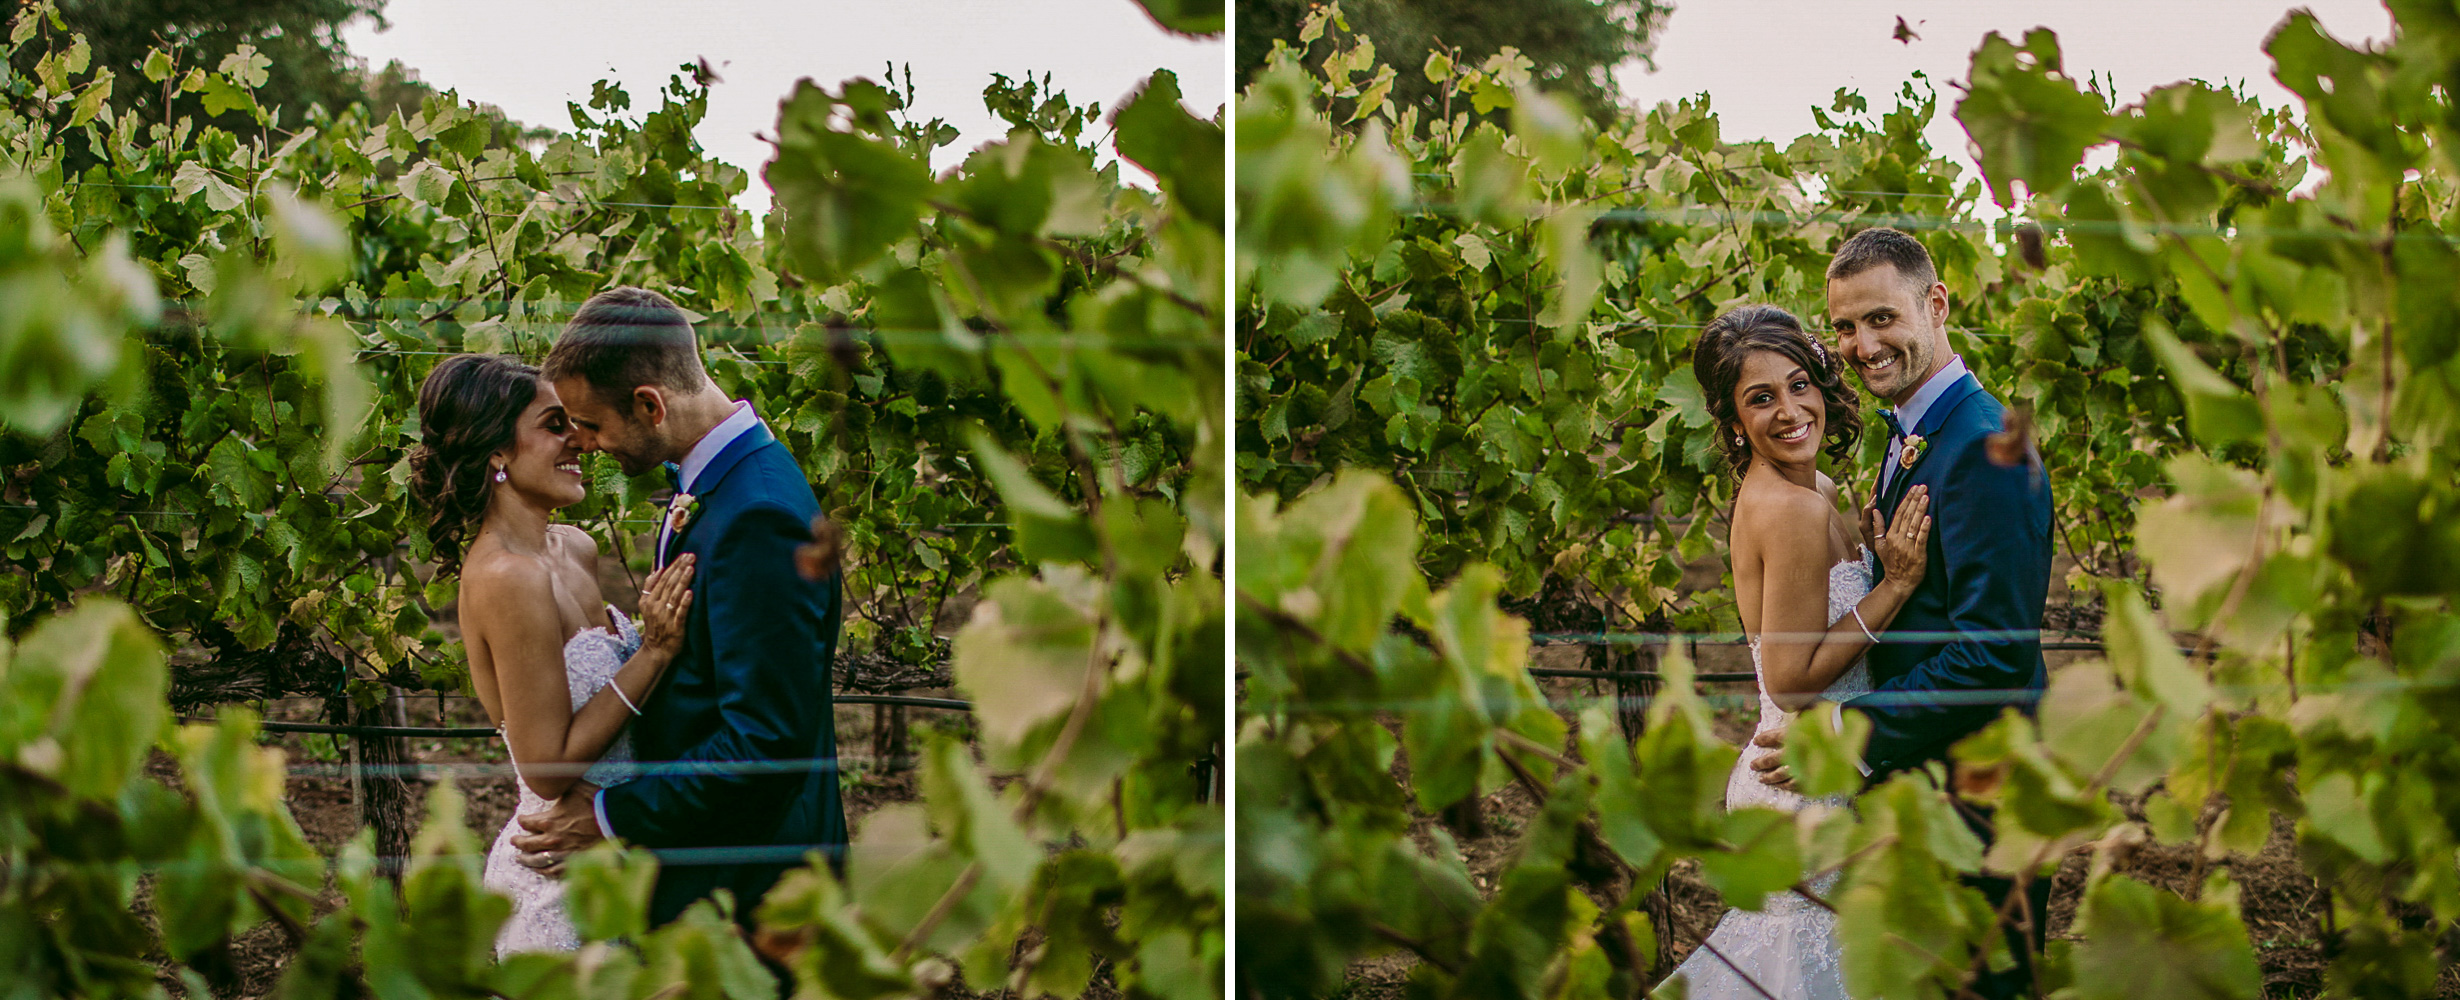 san diego wedding   photographer | collage of bride and groom seen through row of plantation